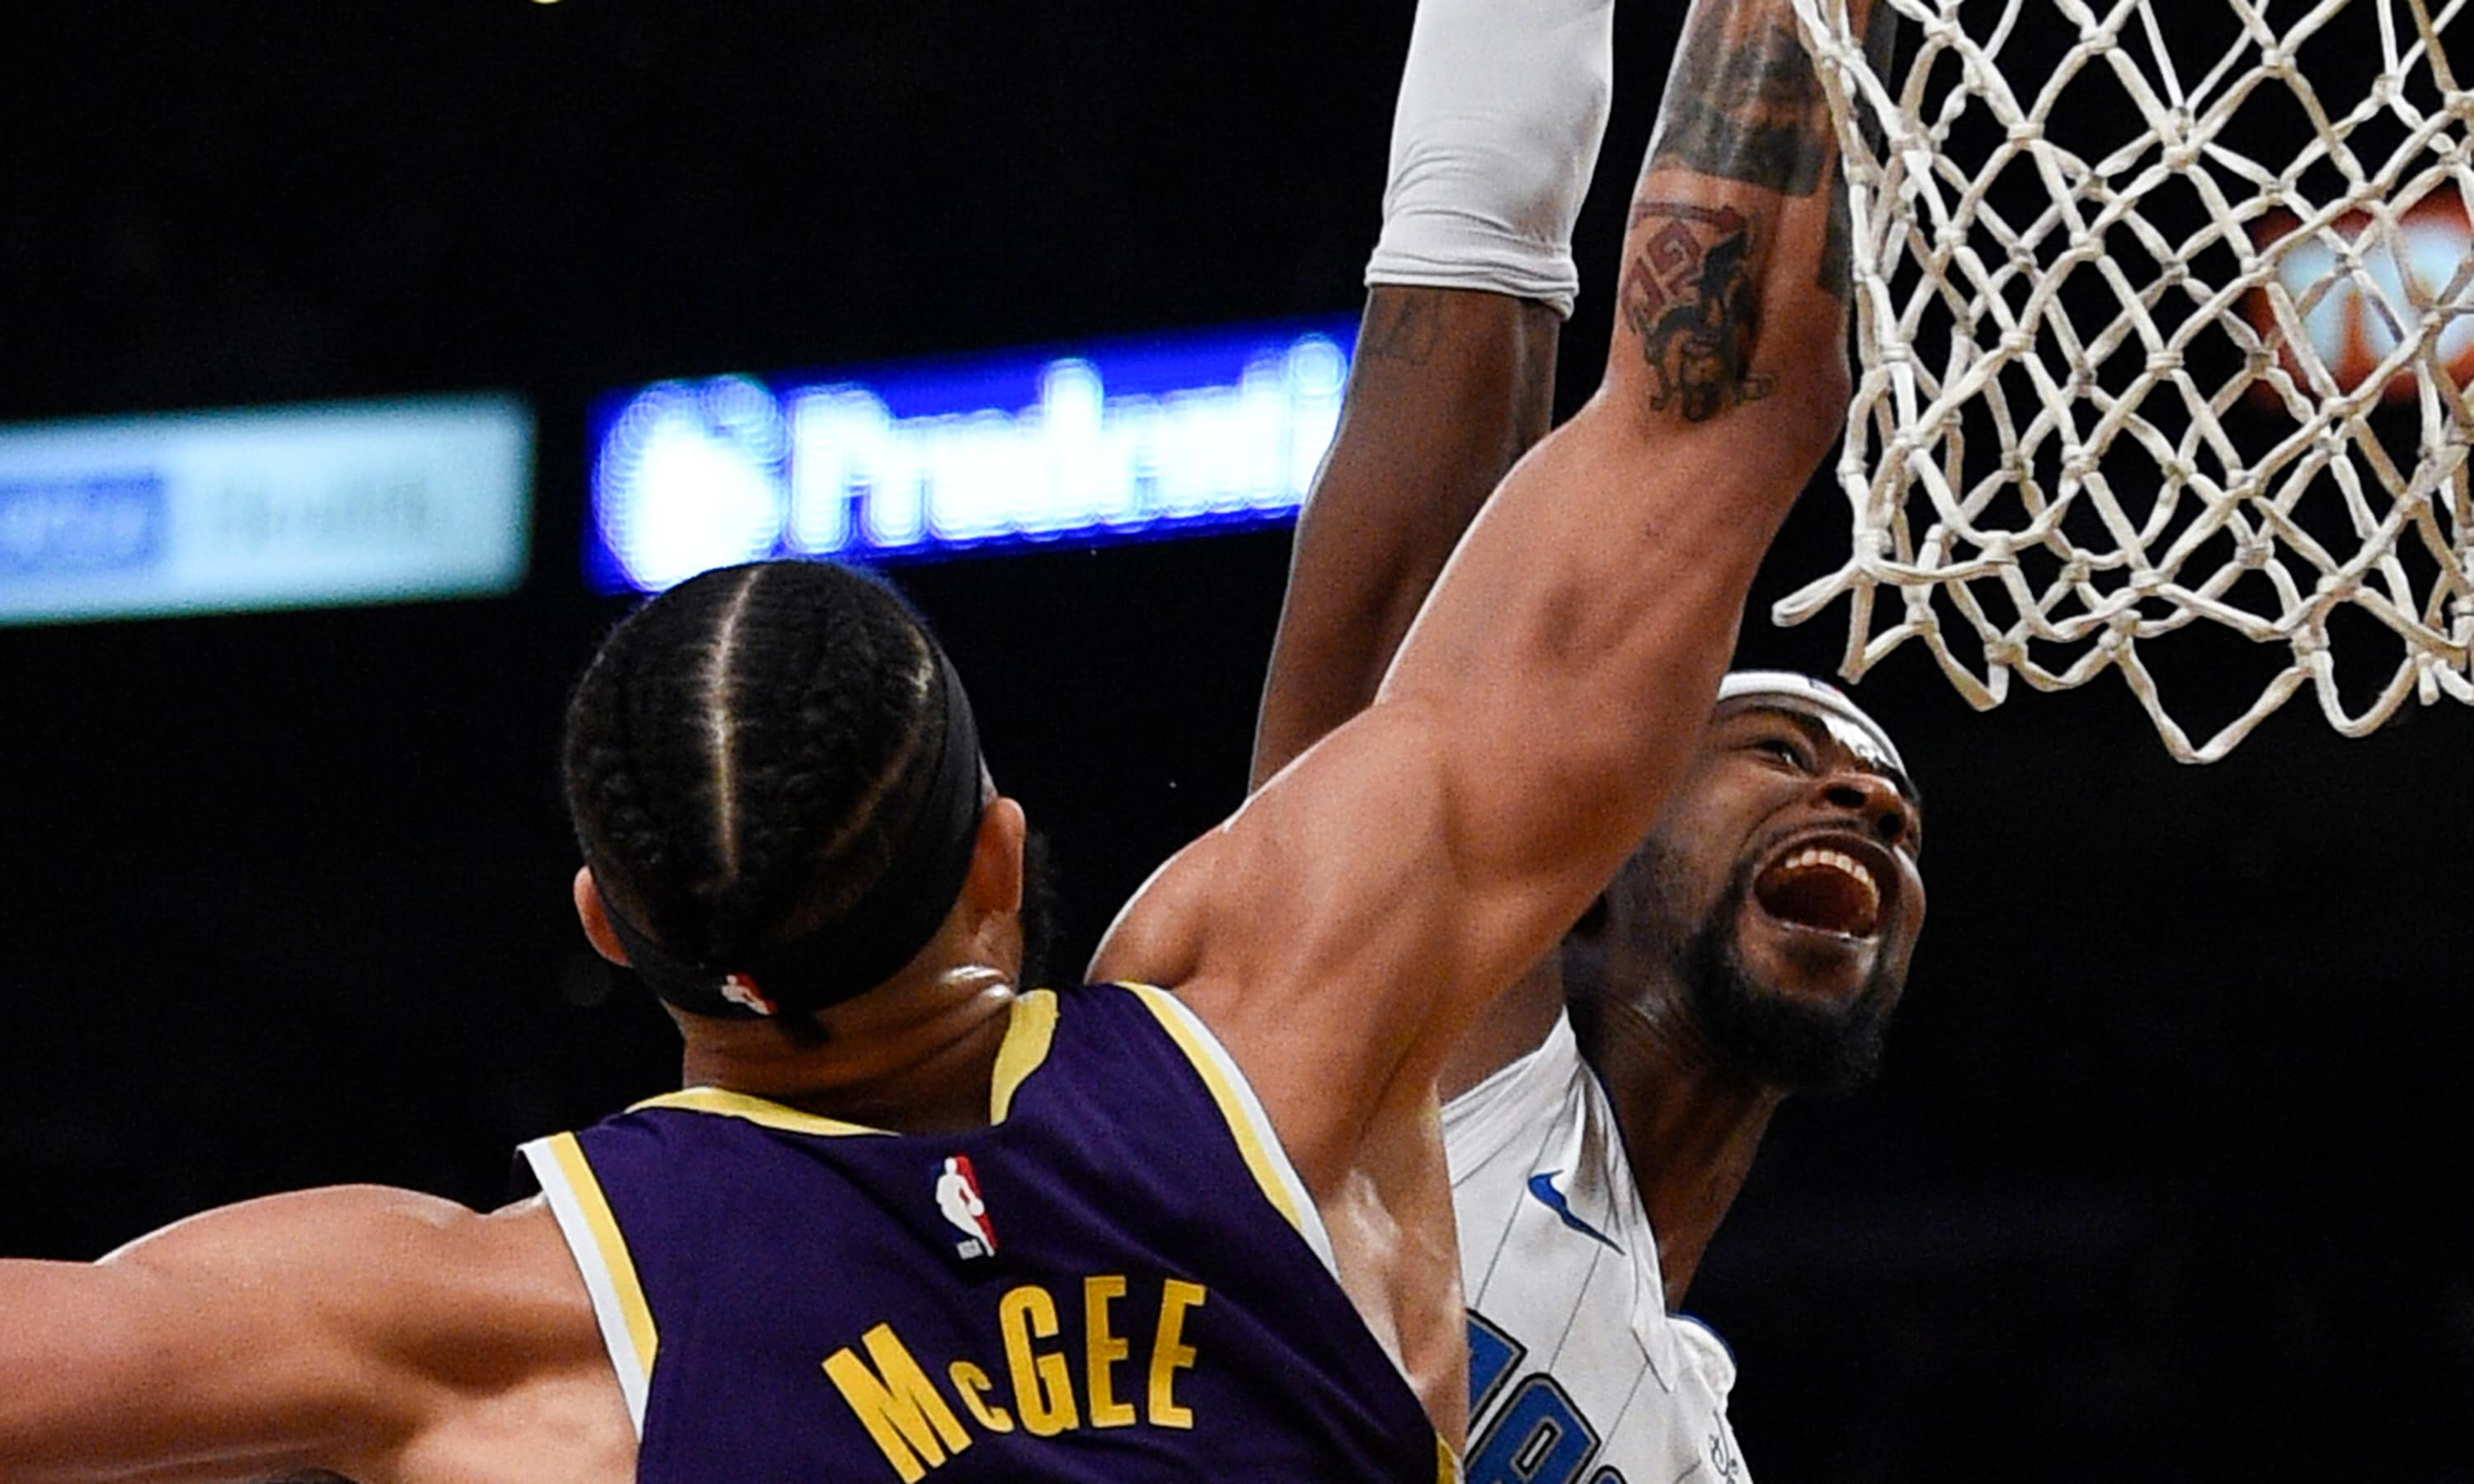 Must-See: JaVale McGee erases Terrence Ross' dunk attempt